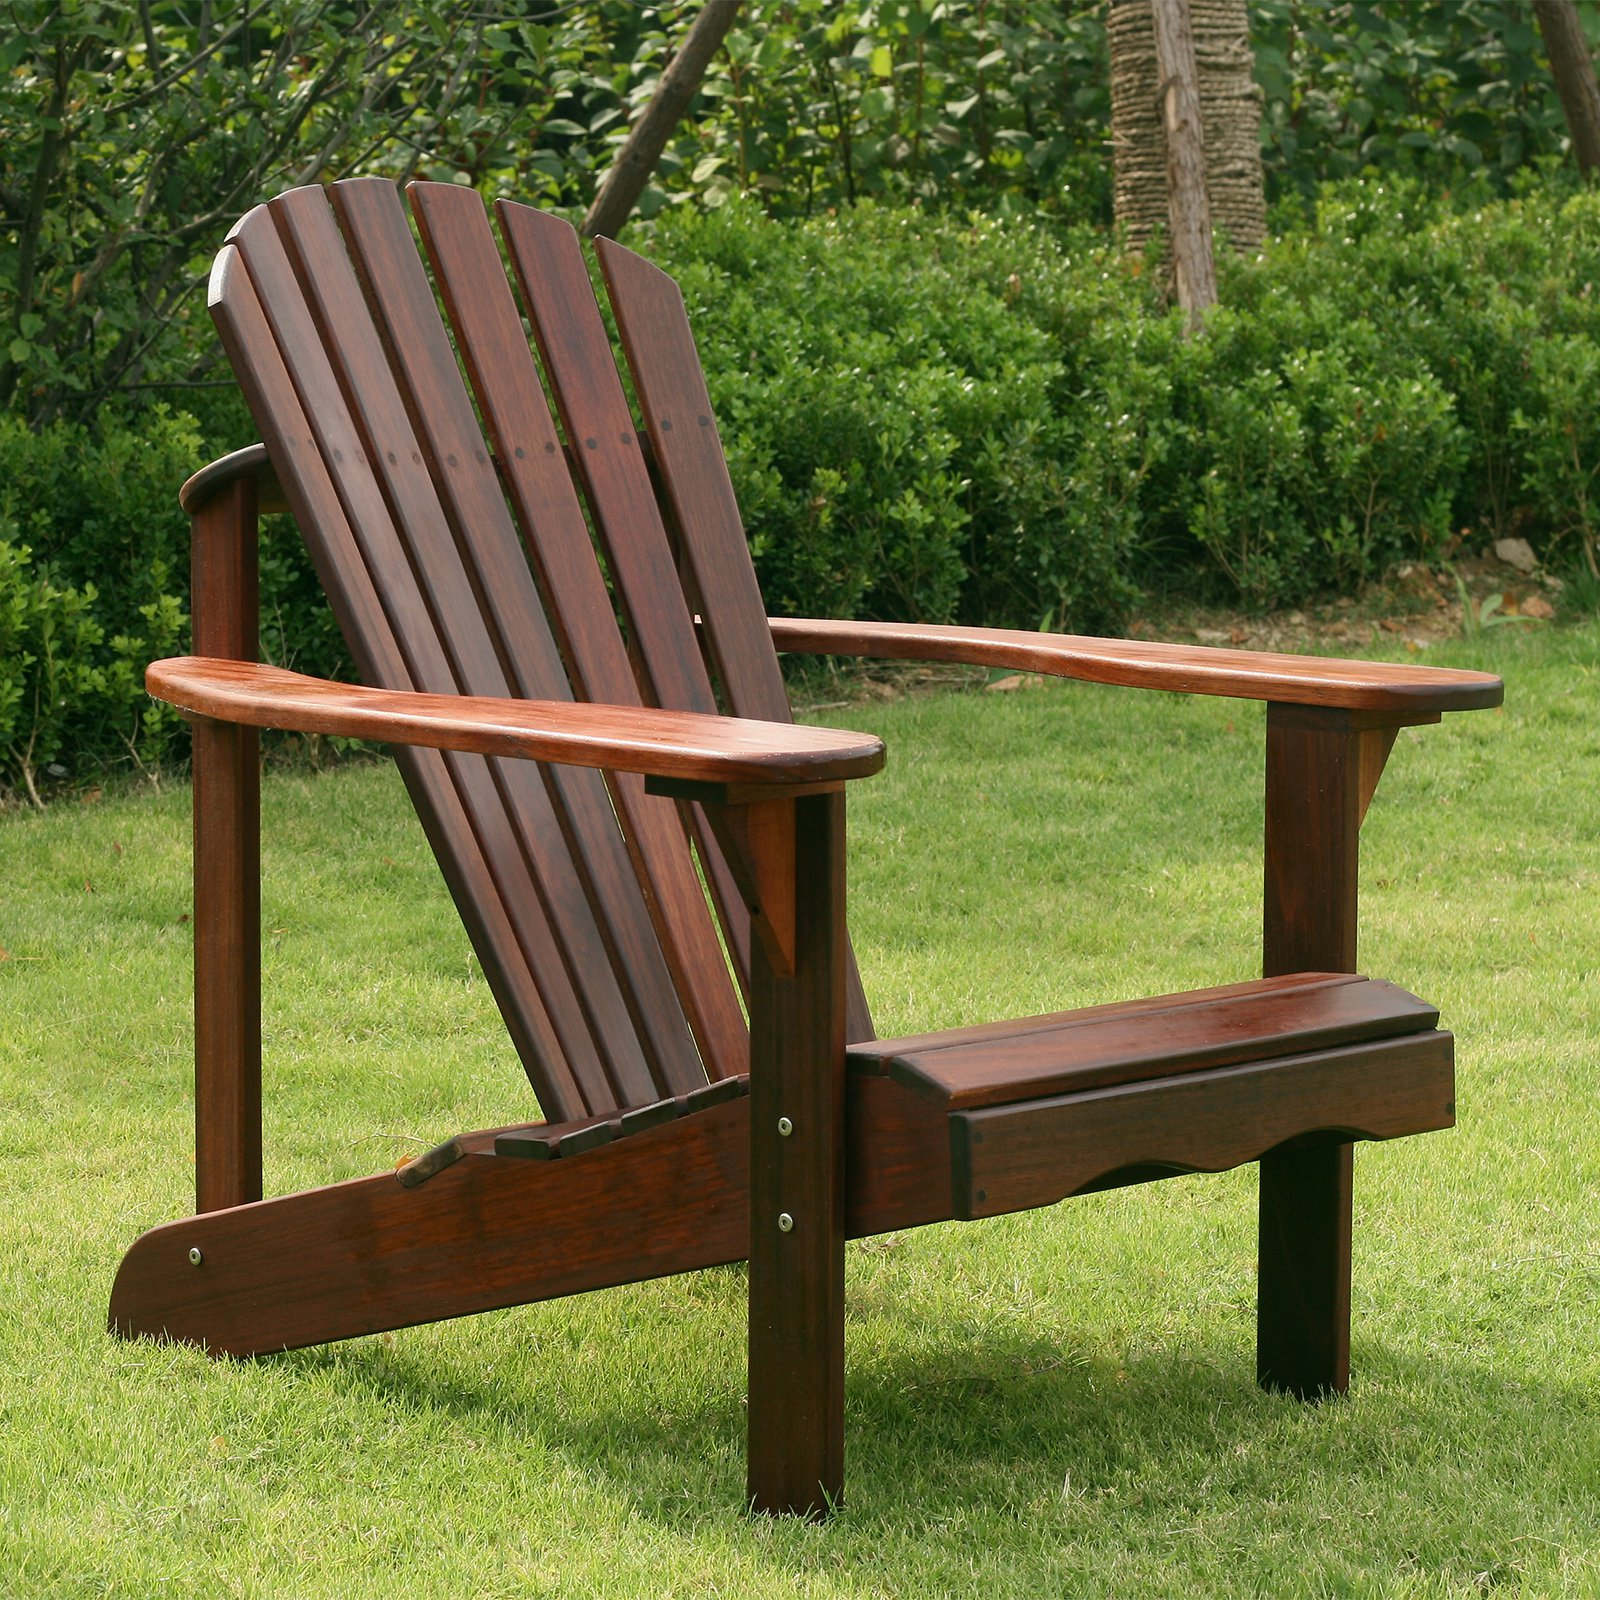 Belham Living Richmond Curveback Shorea Wood Deluxe Adirondack Chair -  Traveller Location